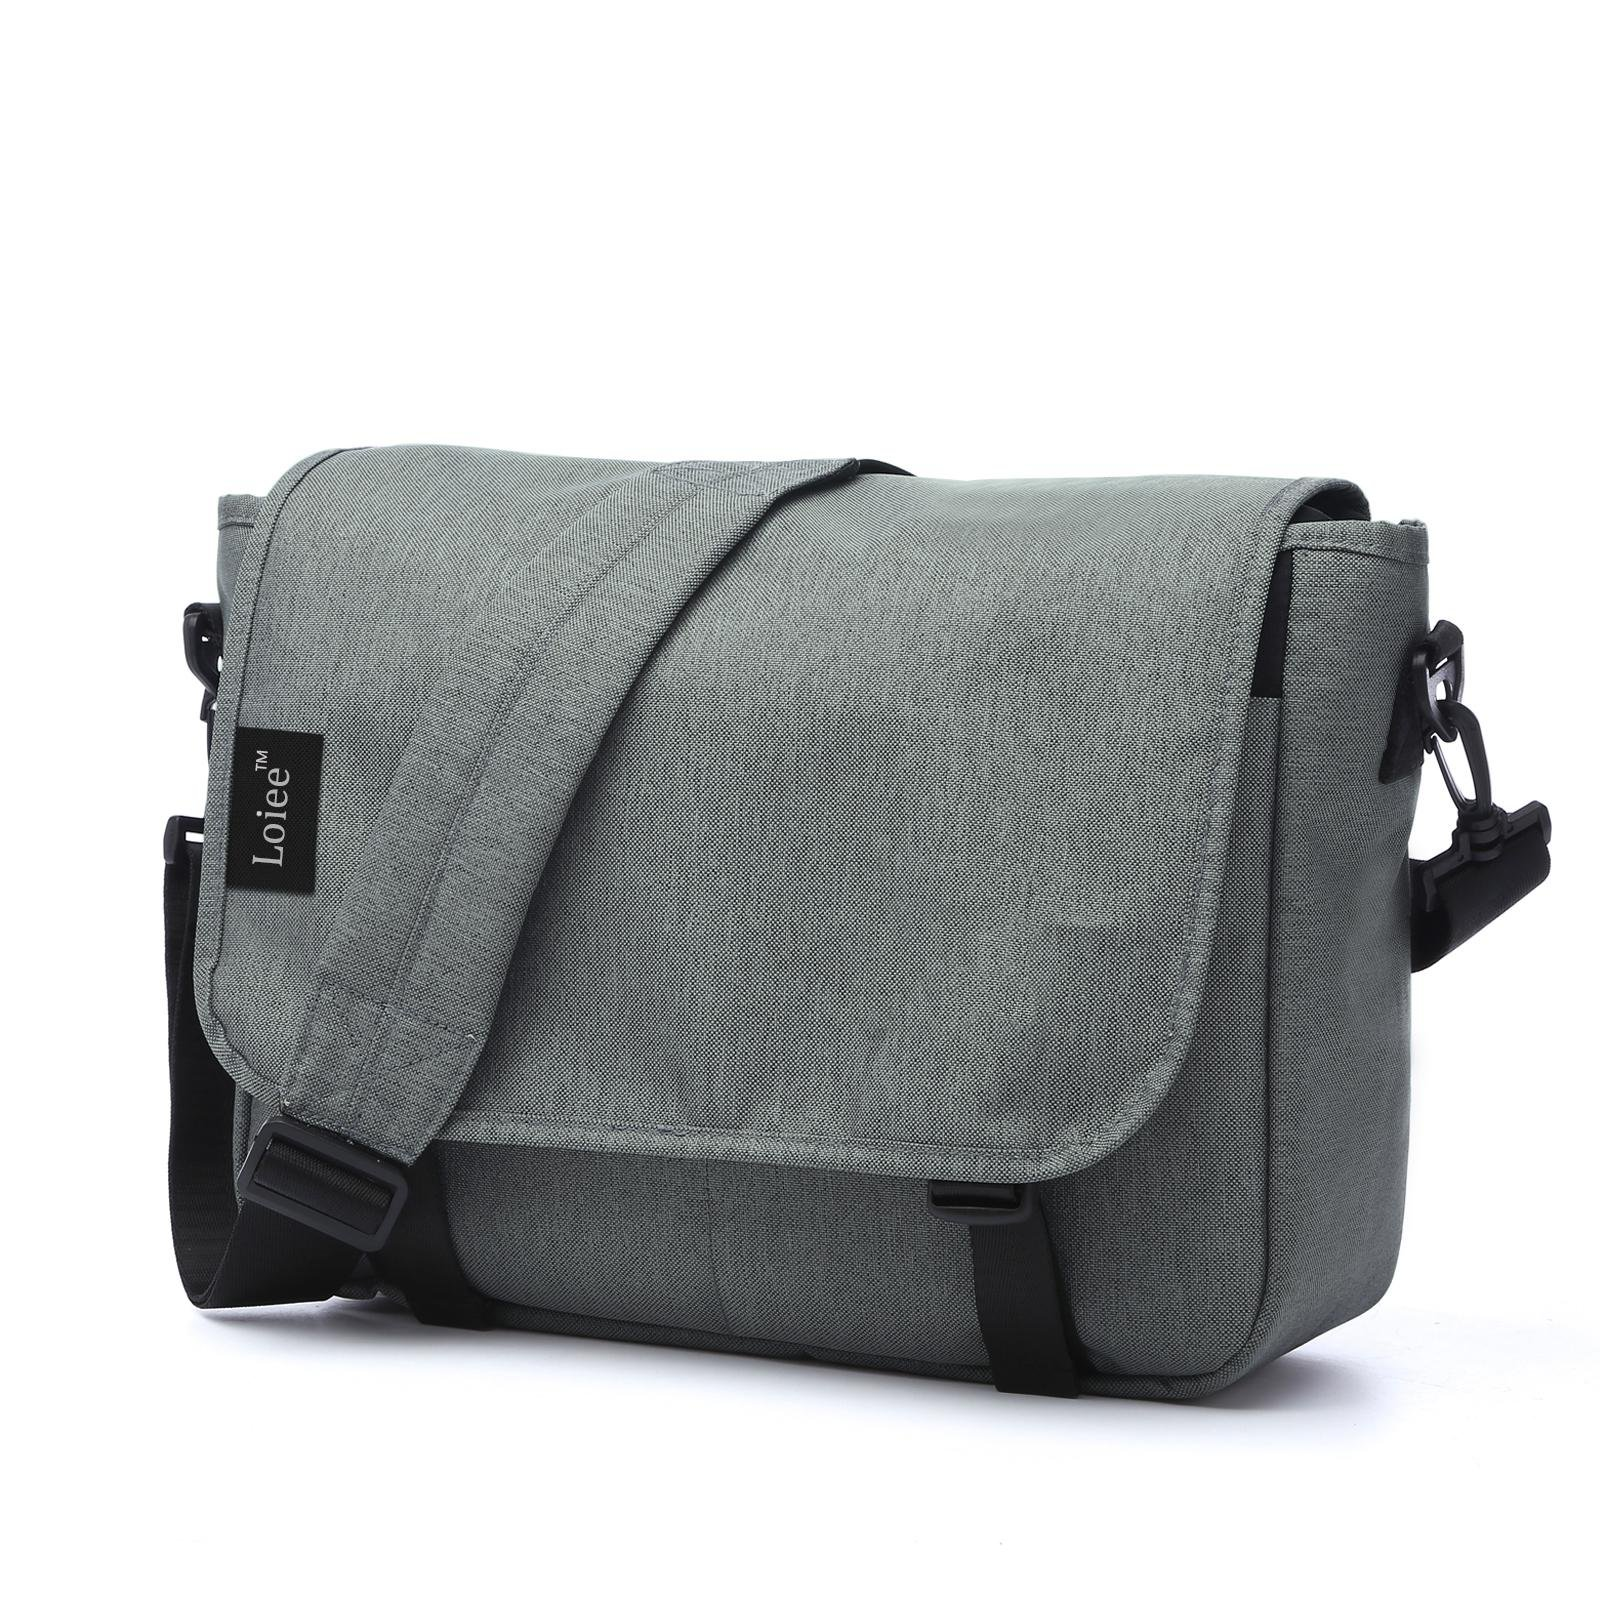 Loiee 14 inches Classic Canvas Messenger Bag,Water Resistant Vintage School Bag,Grey